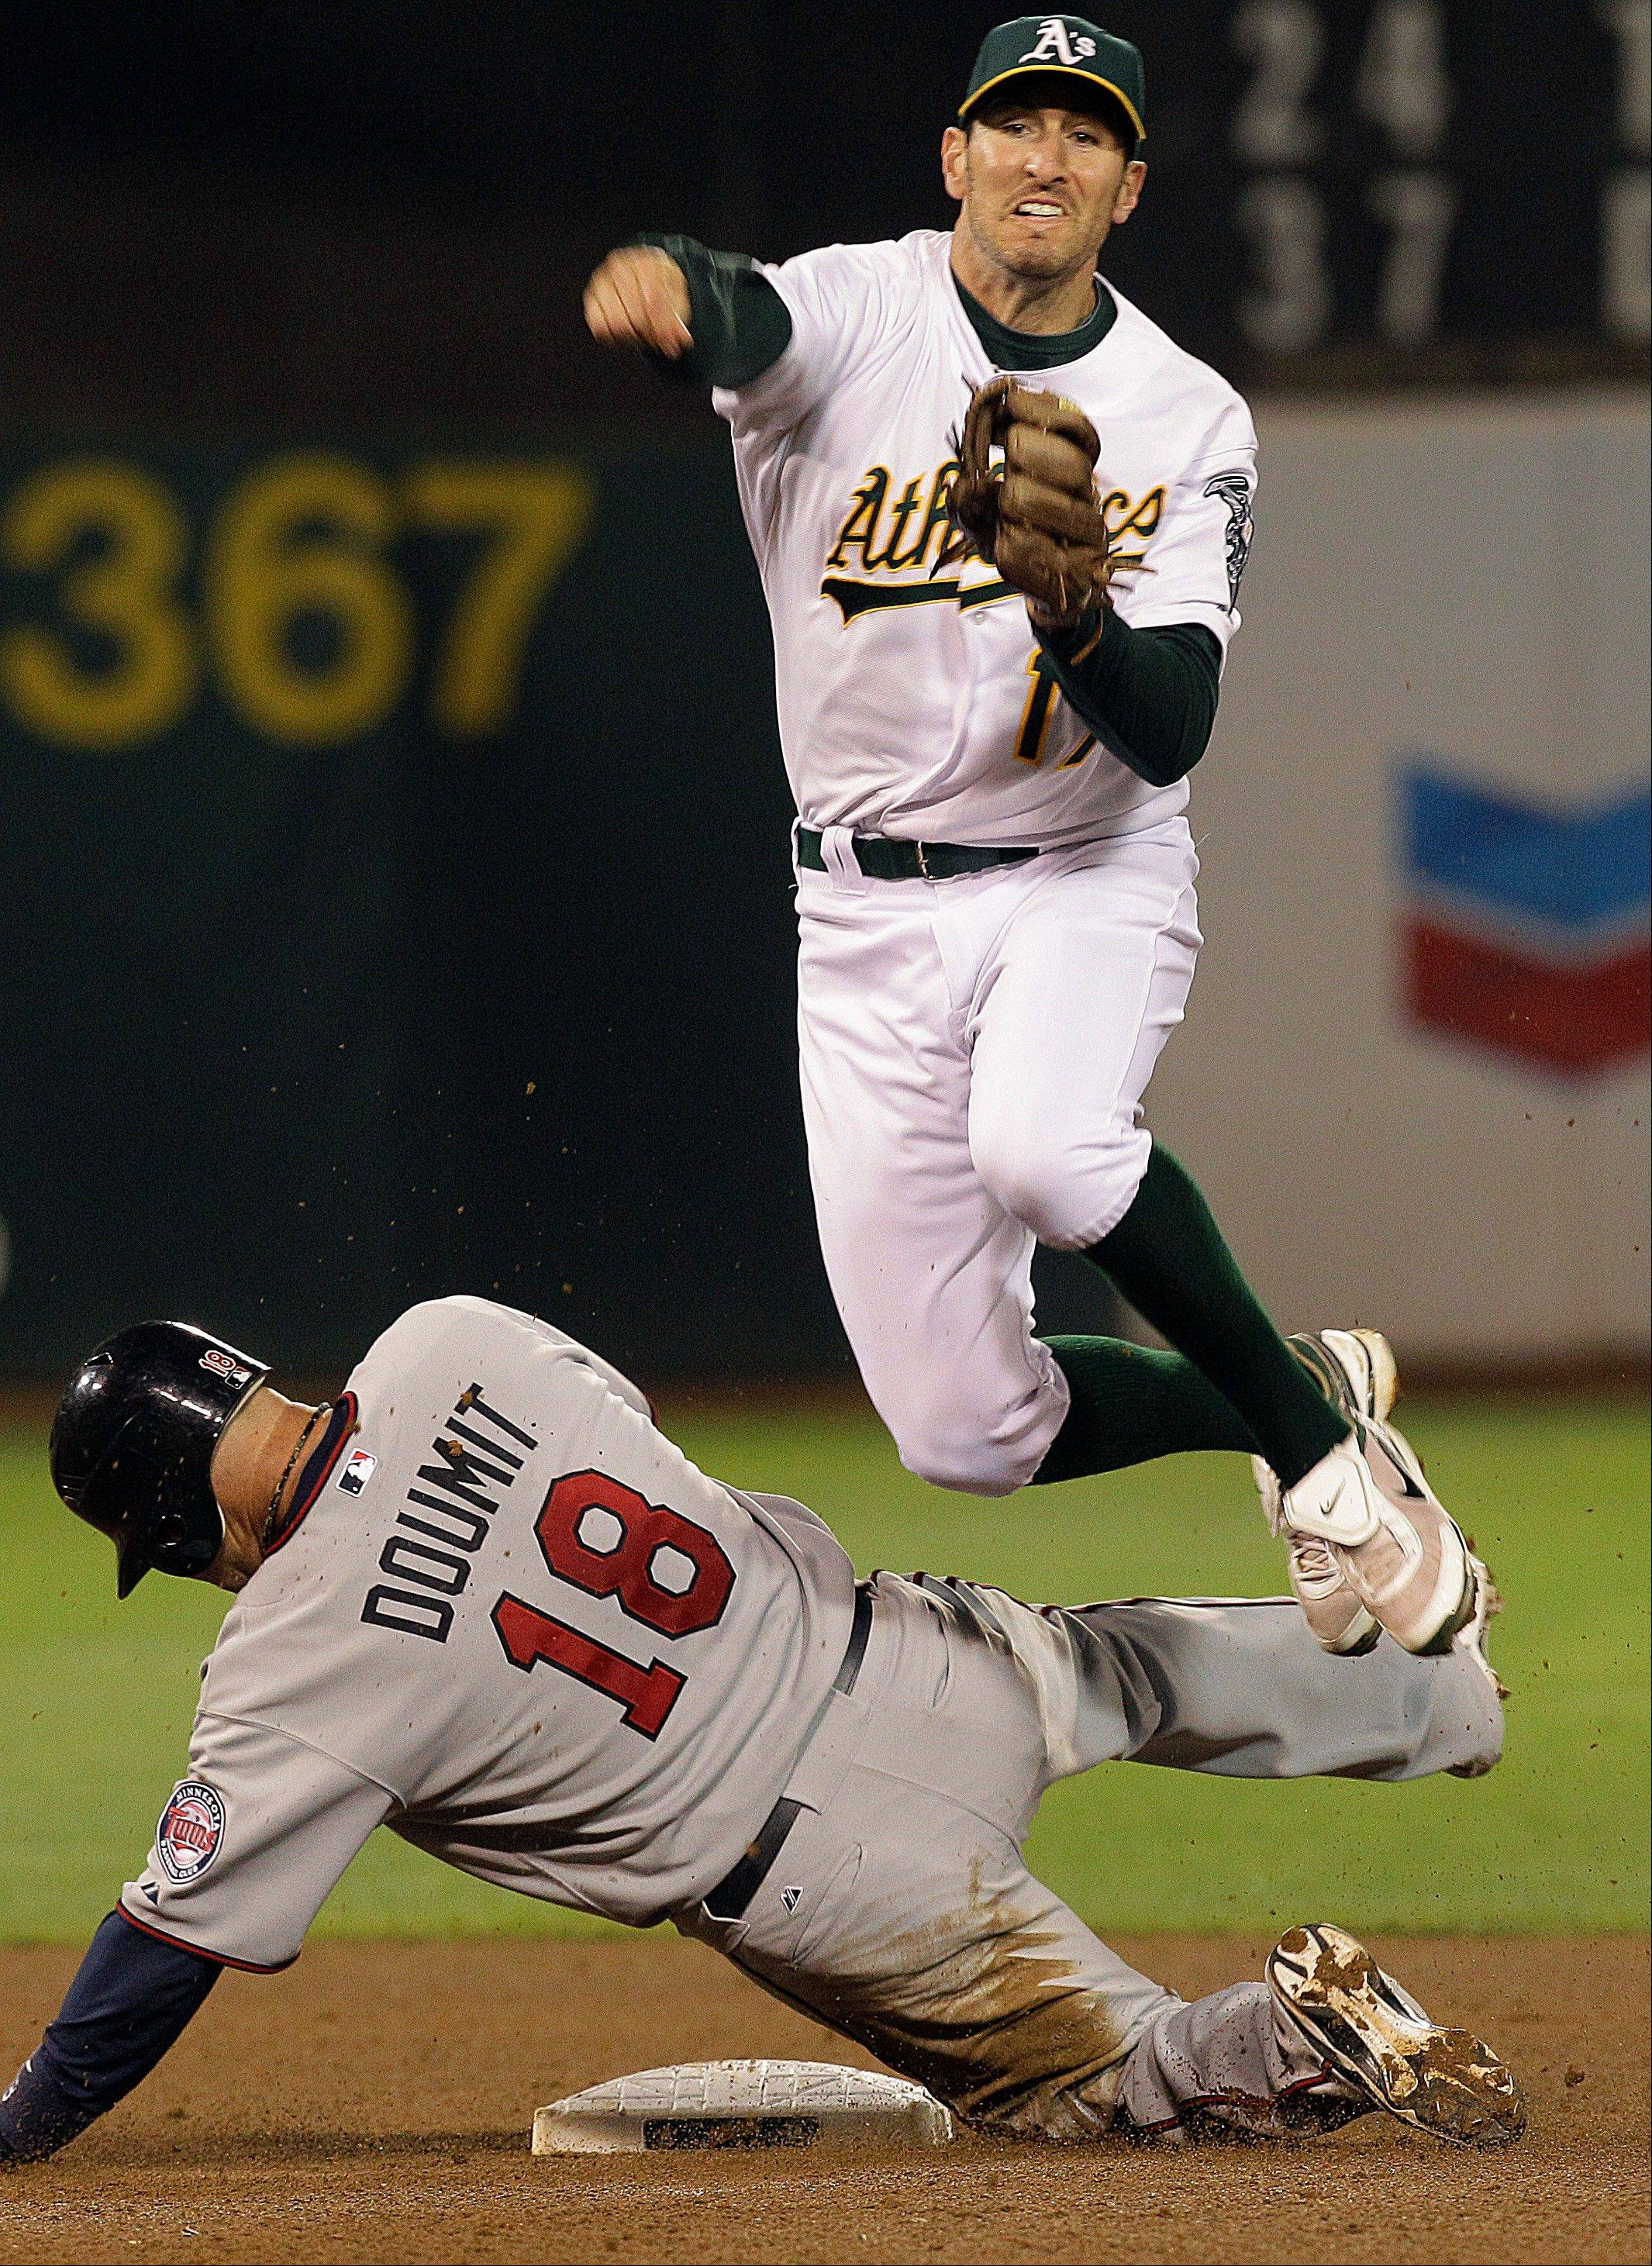 A's second baseman Adam Rosales throws to first over the Twins' Ryan Doumit, completing a triple play hit into by Trevor Plouffe in the fifth inning Tuesday in Oakland, Calif.